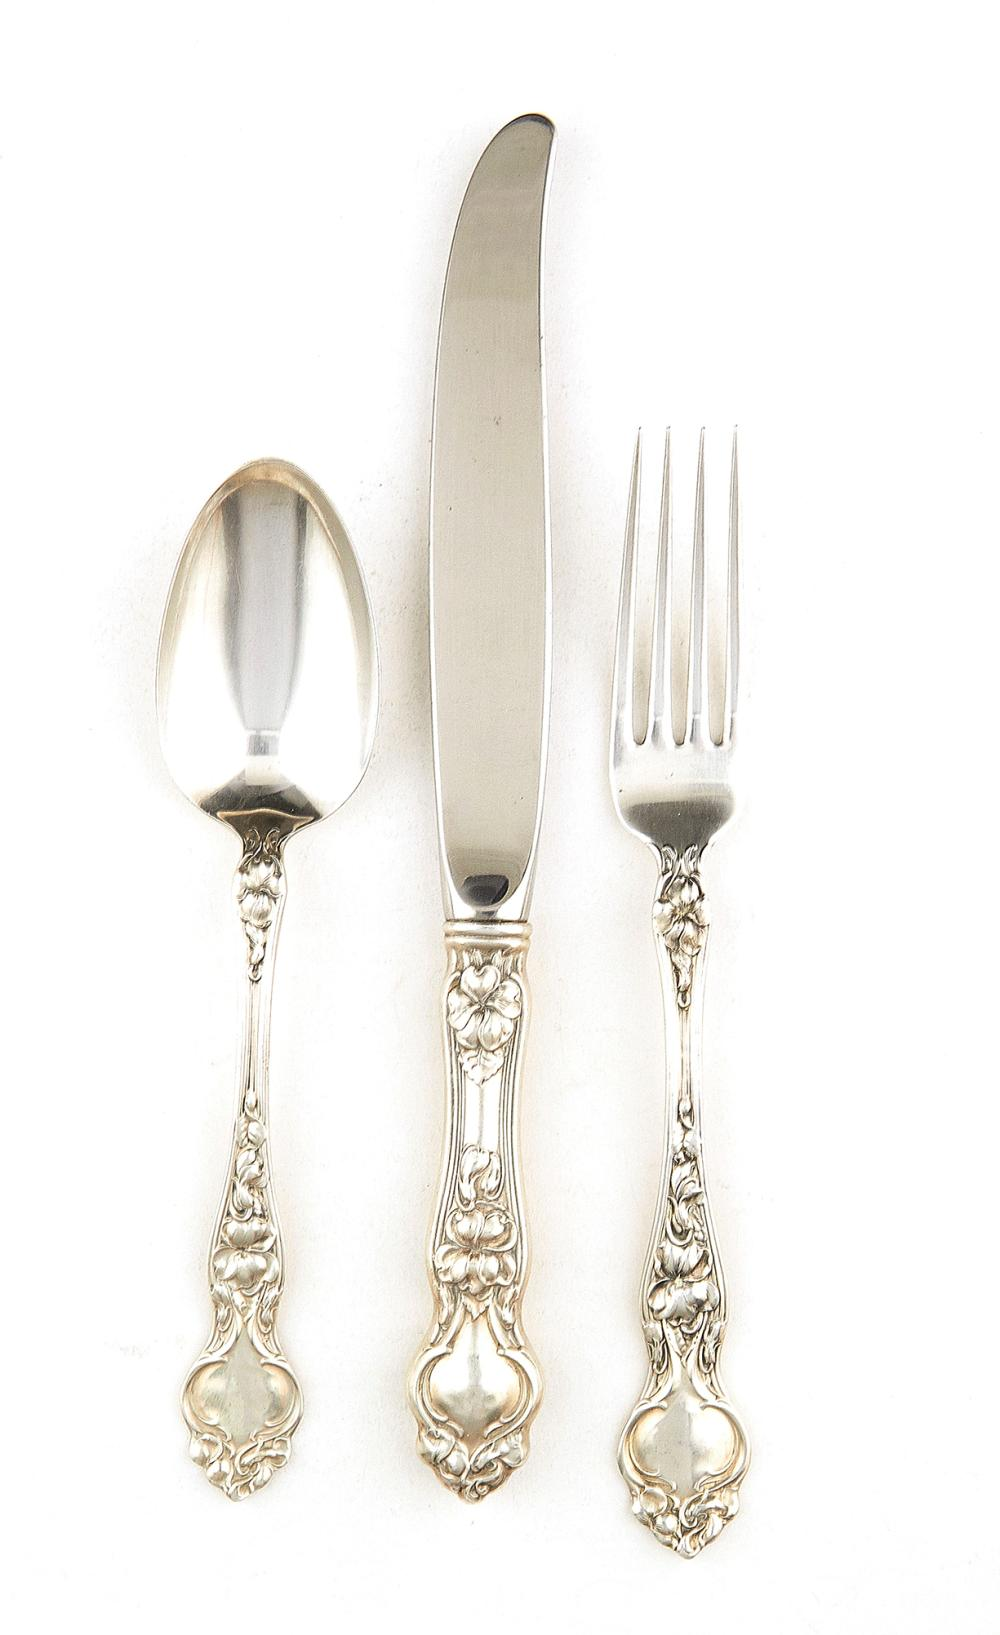 American silver Violet pattern flatware service, Wallace (approx. 155pcs)